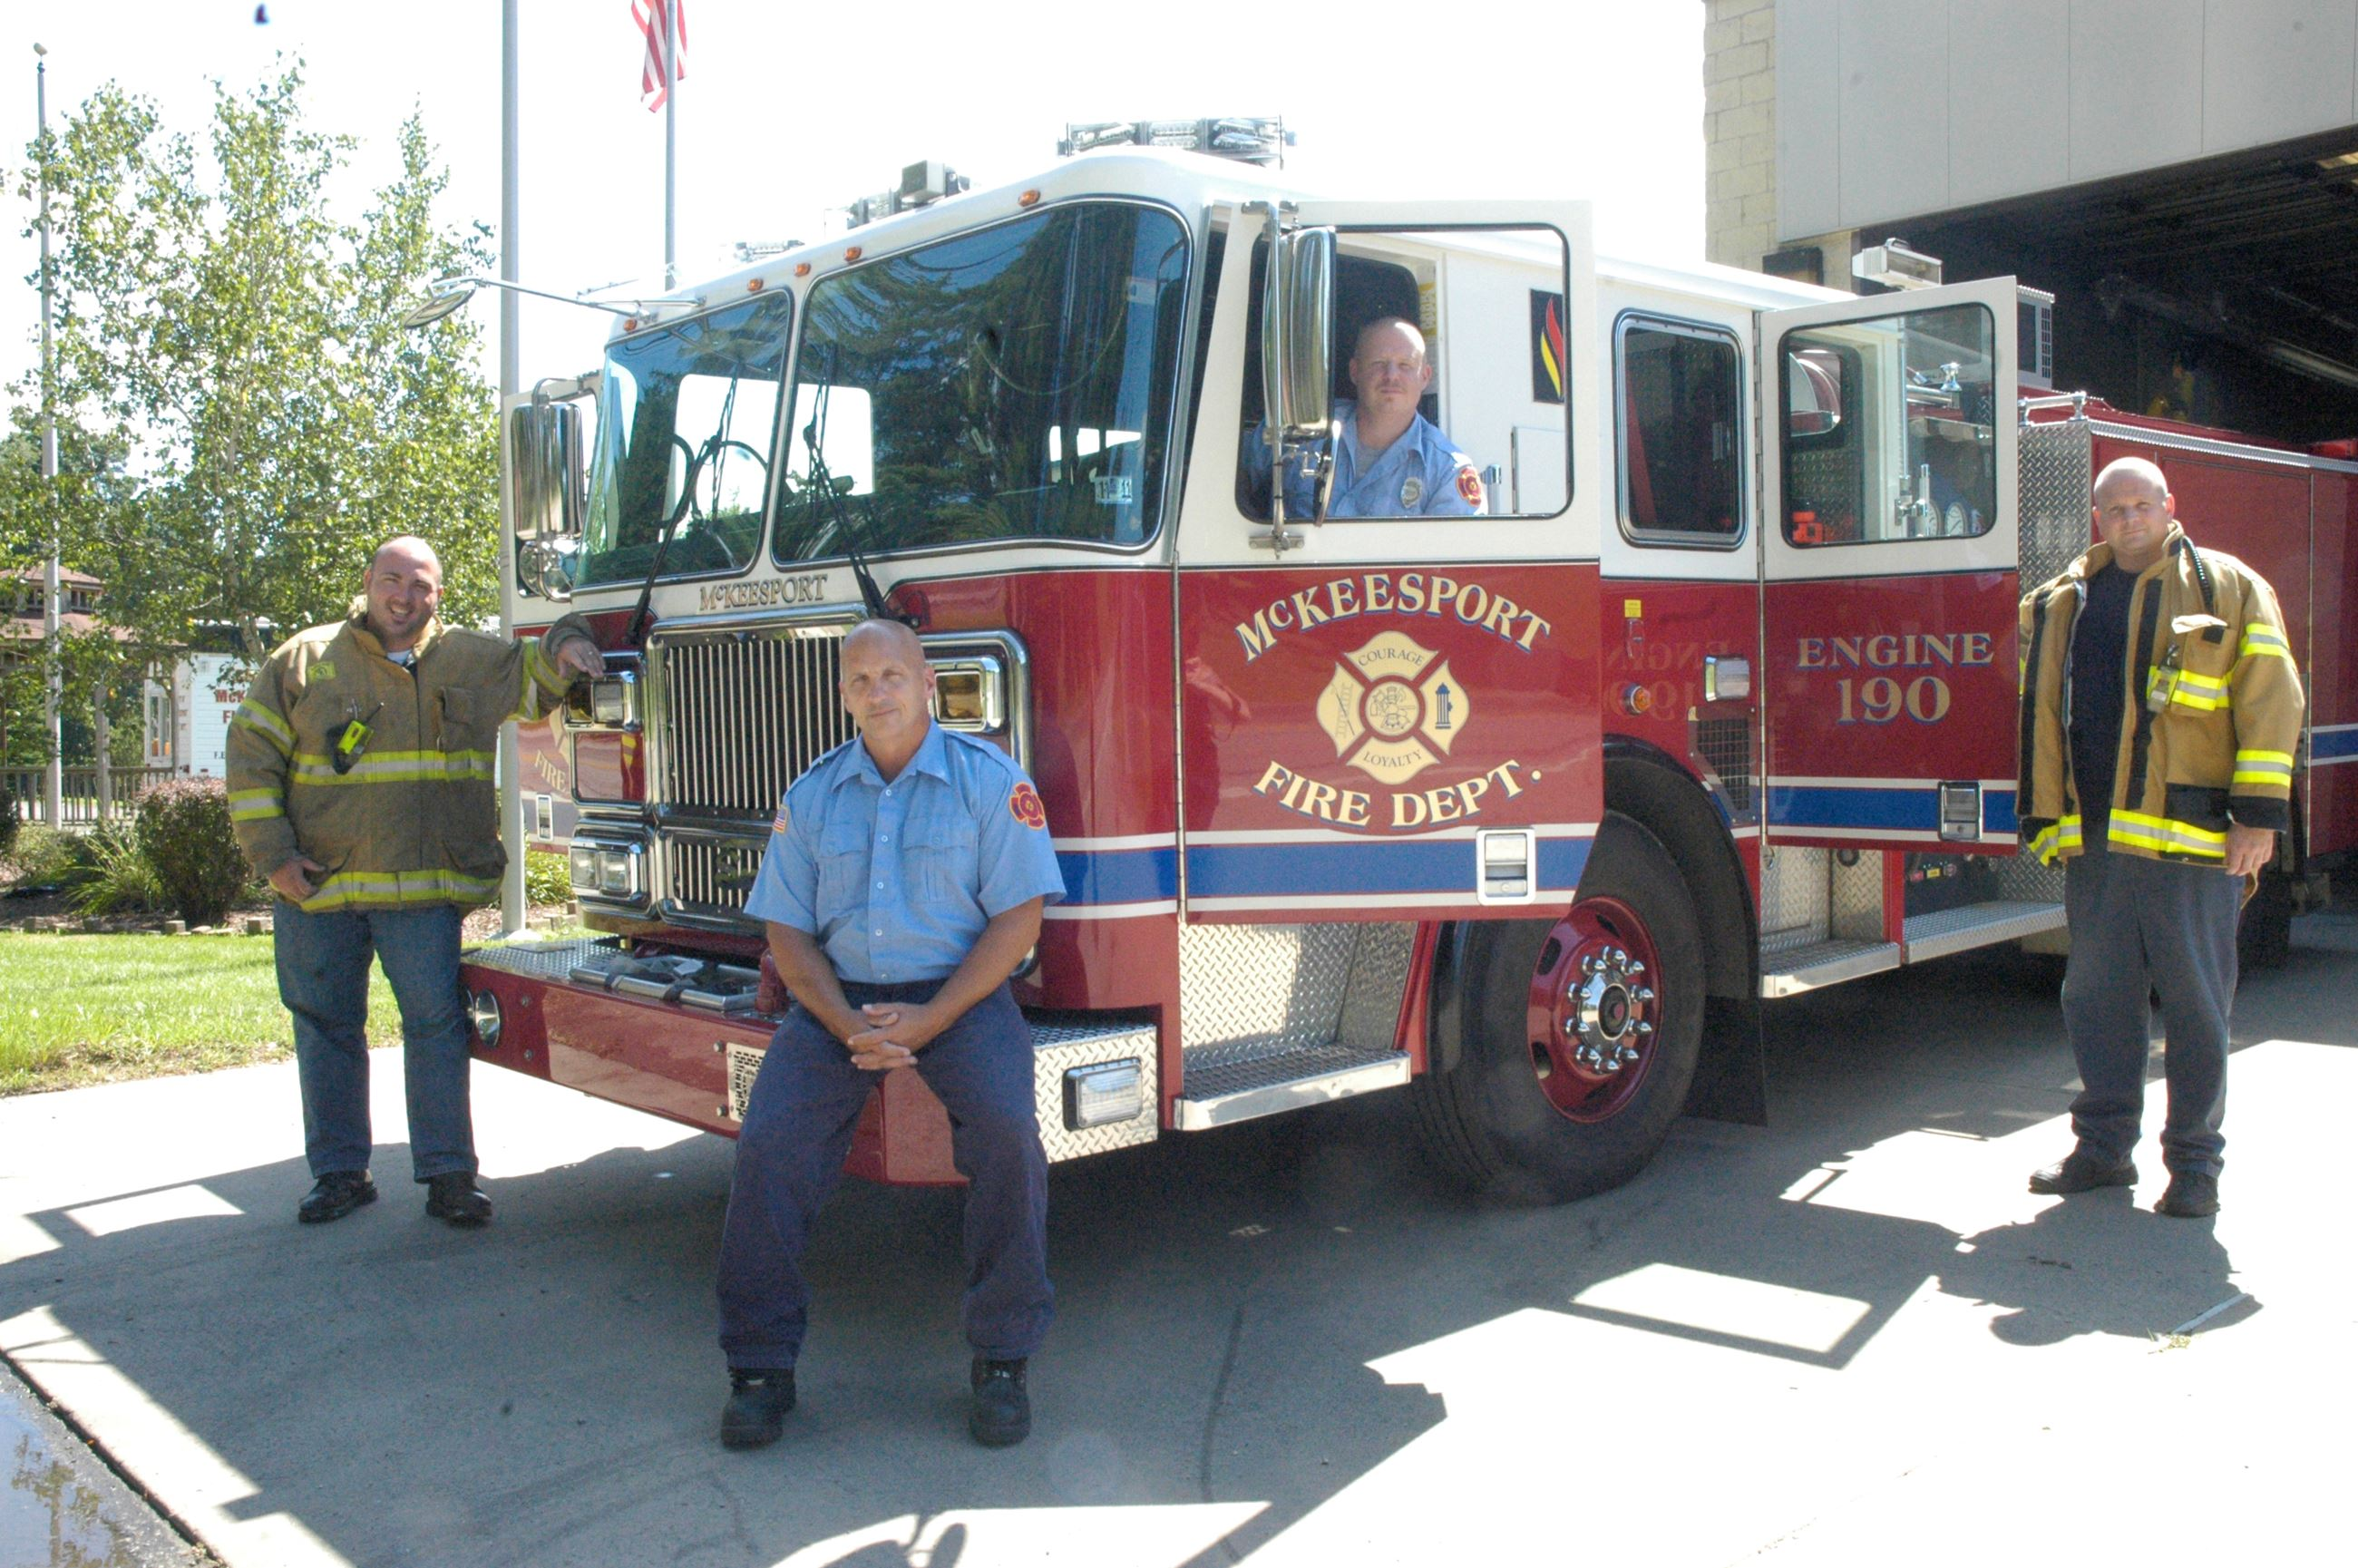 McKeesport Fire Department poses next to fire truck